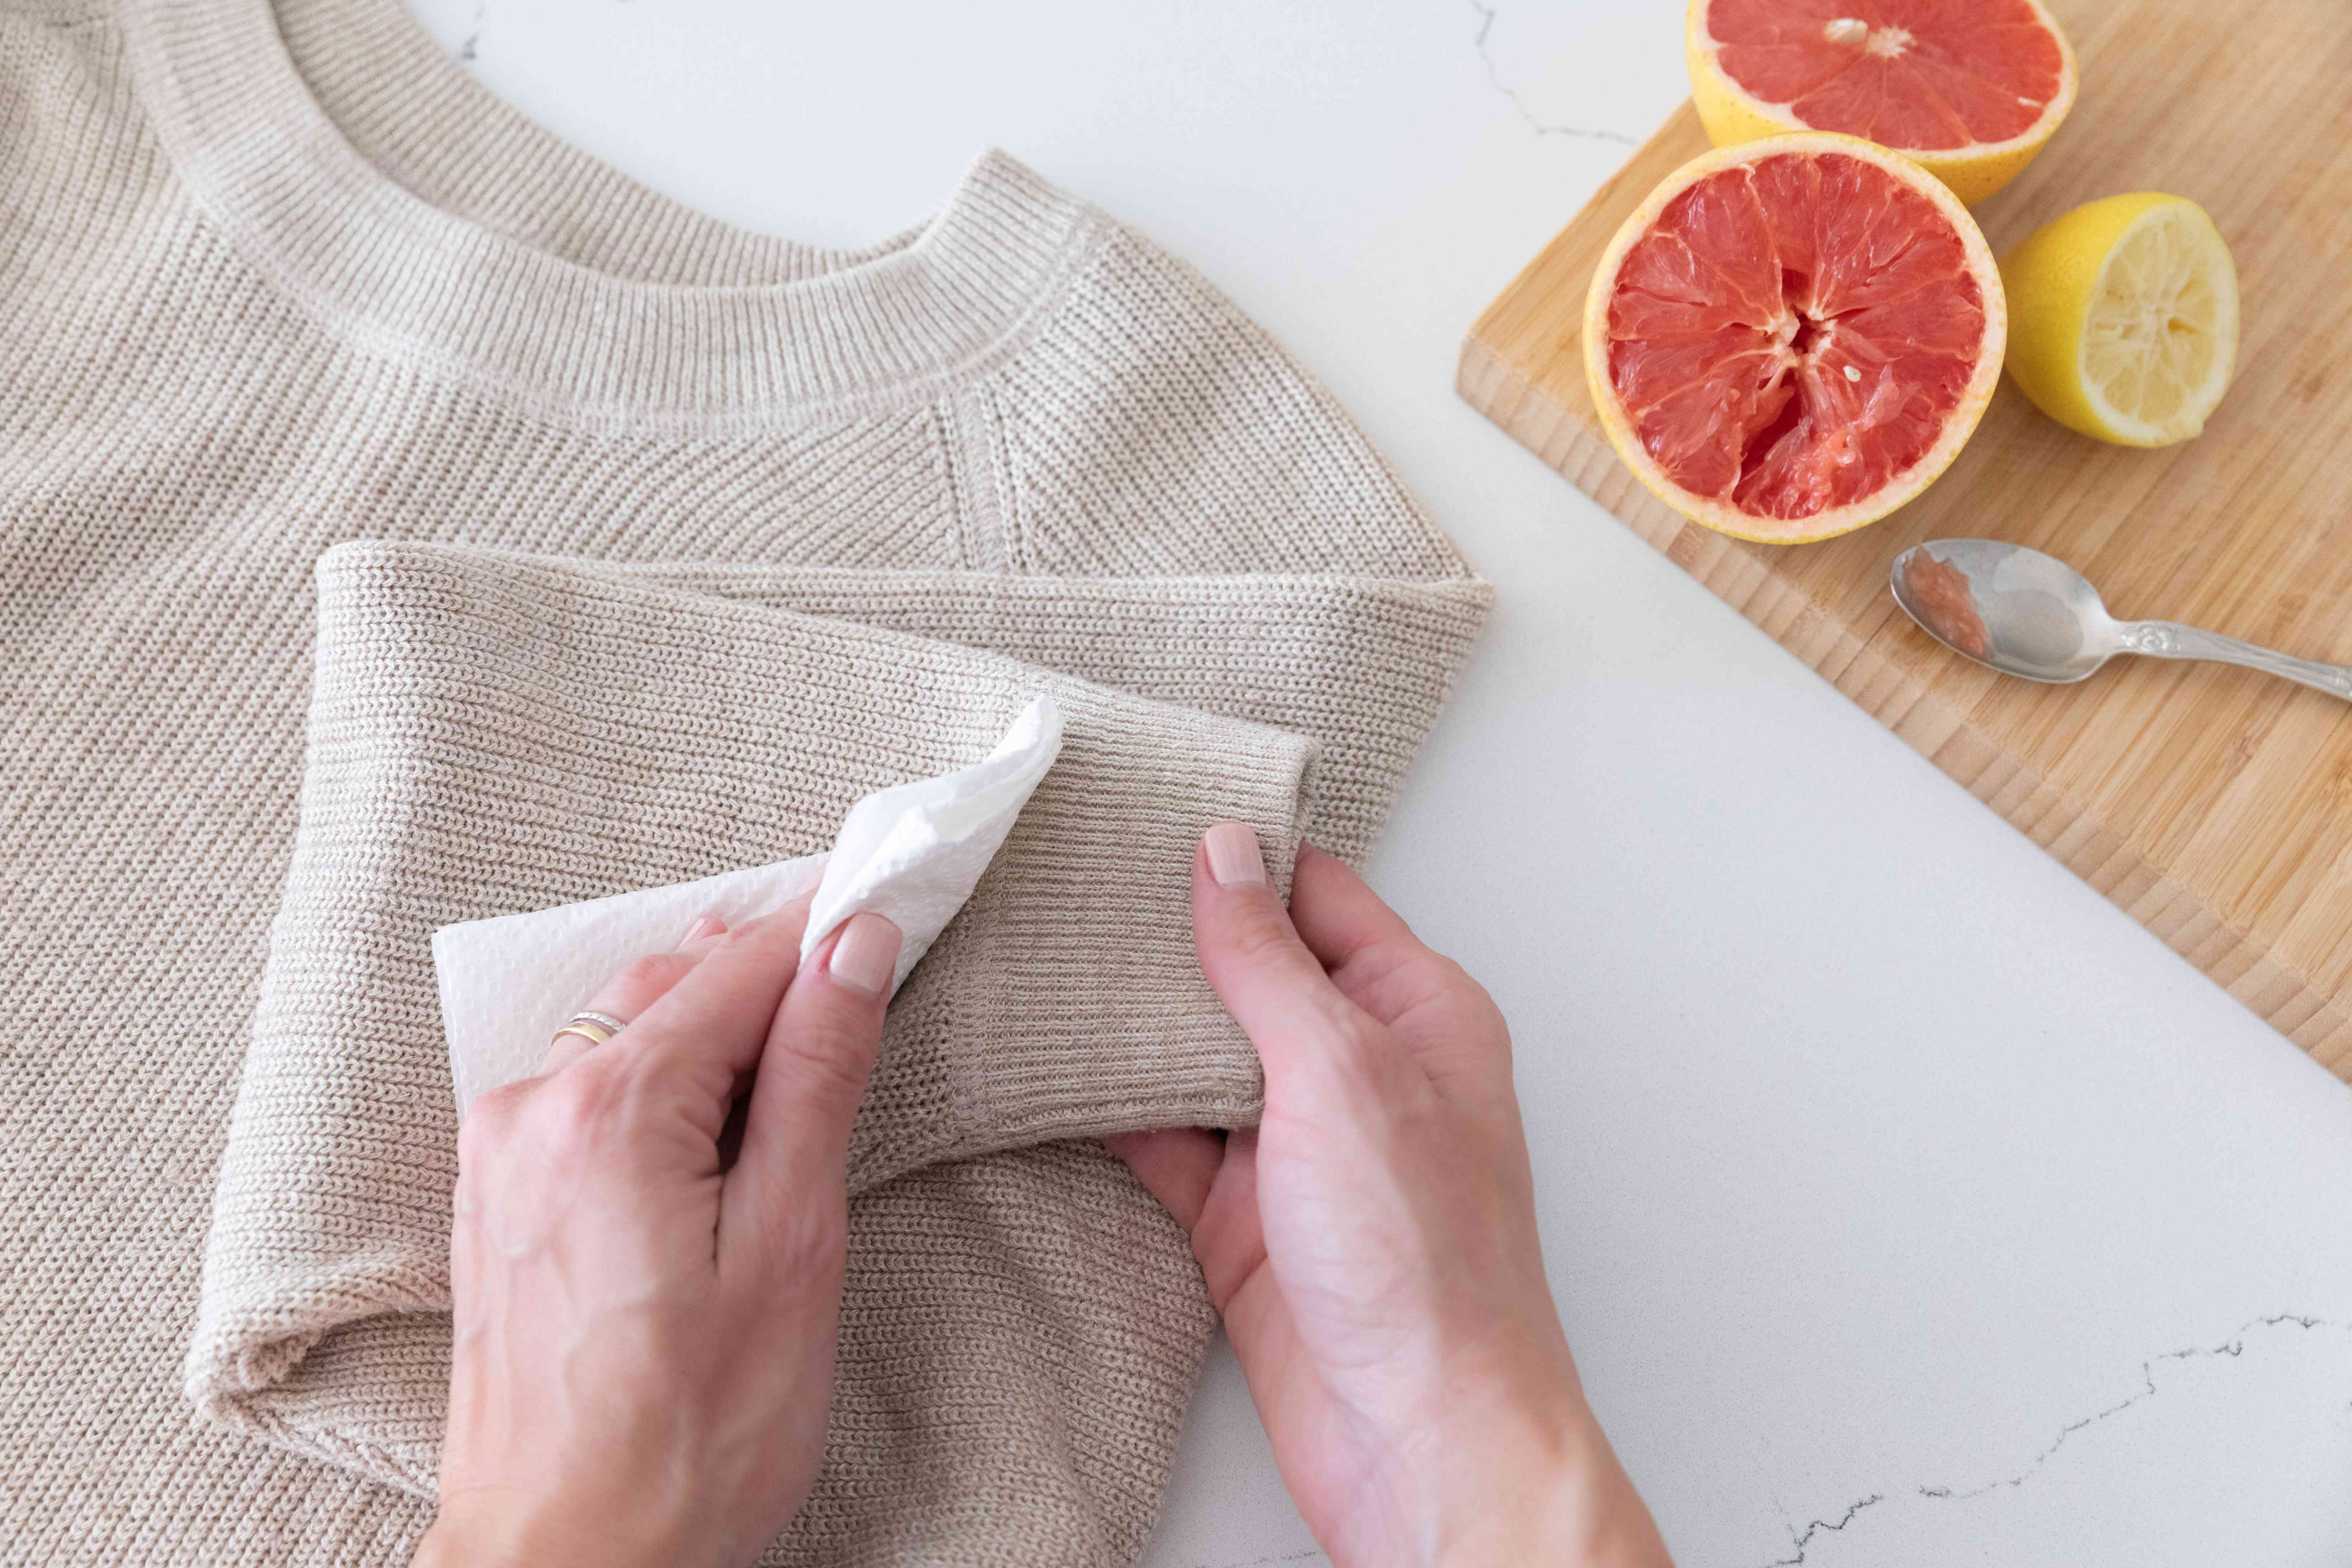 White cloth dipped in water blotting dry clean clothing sleeve to remove citrus stain